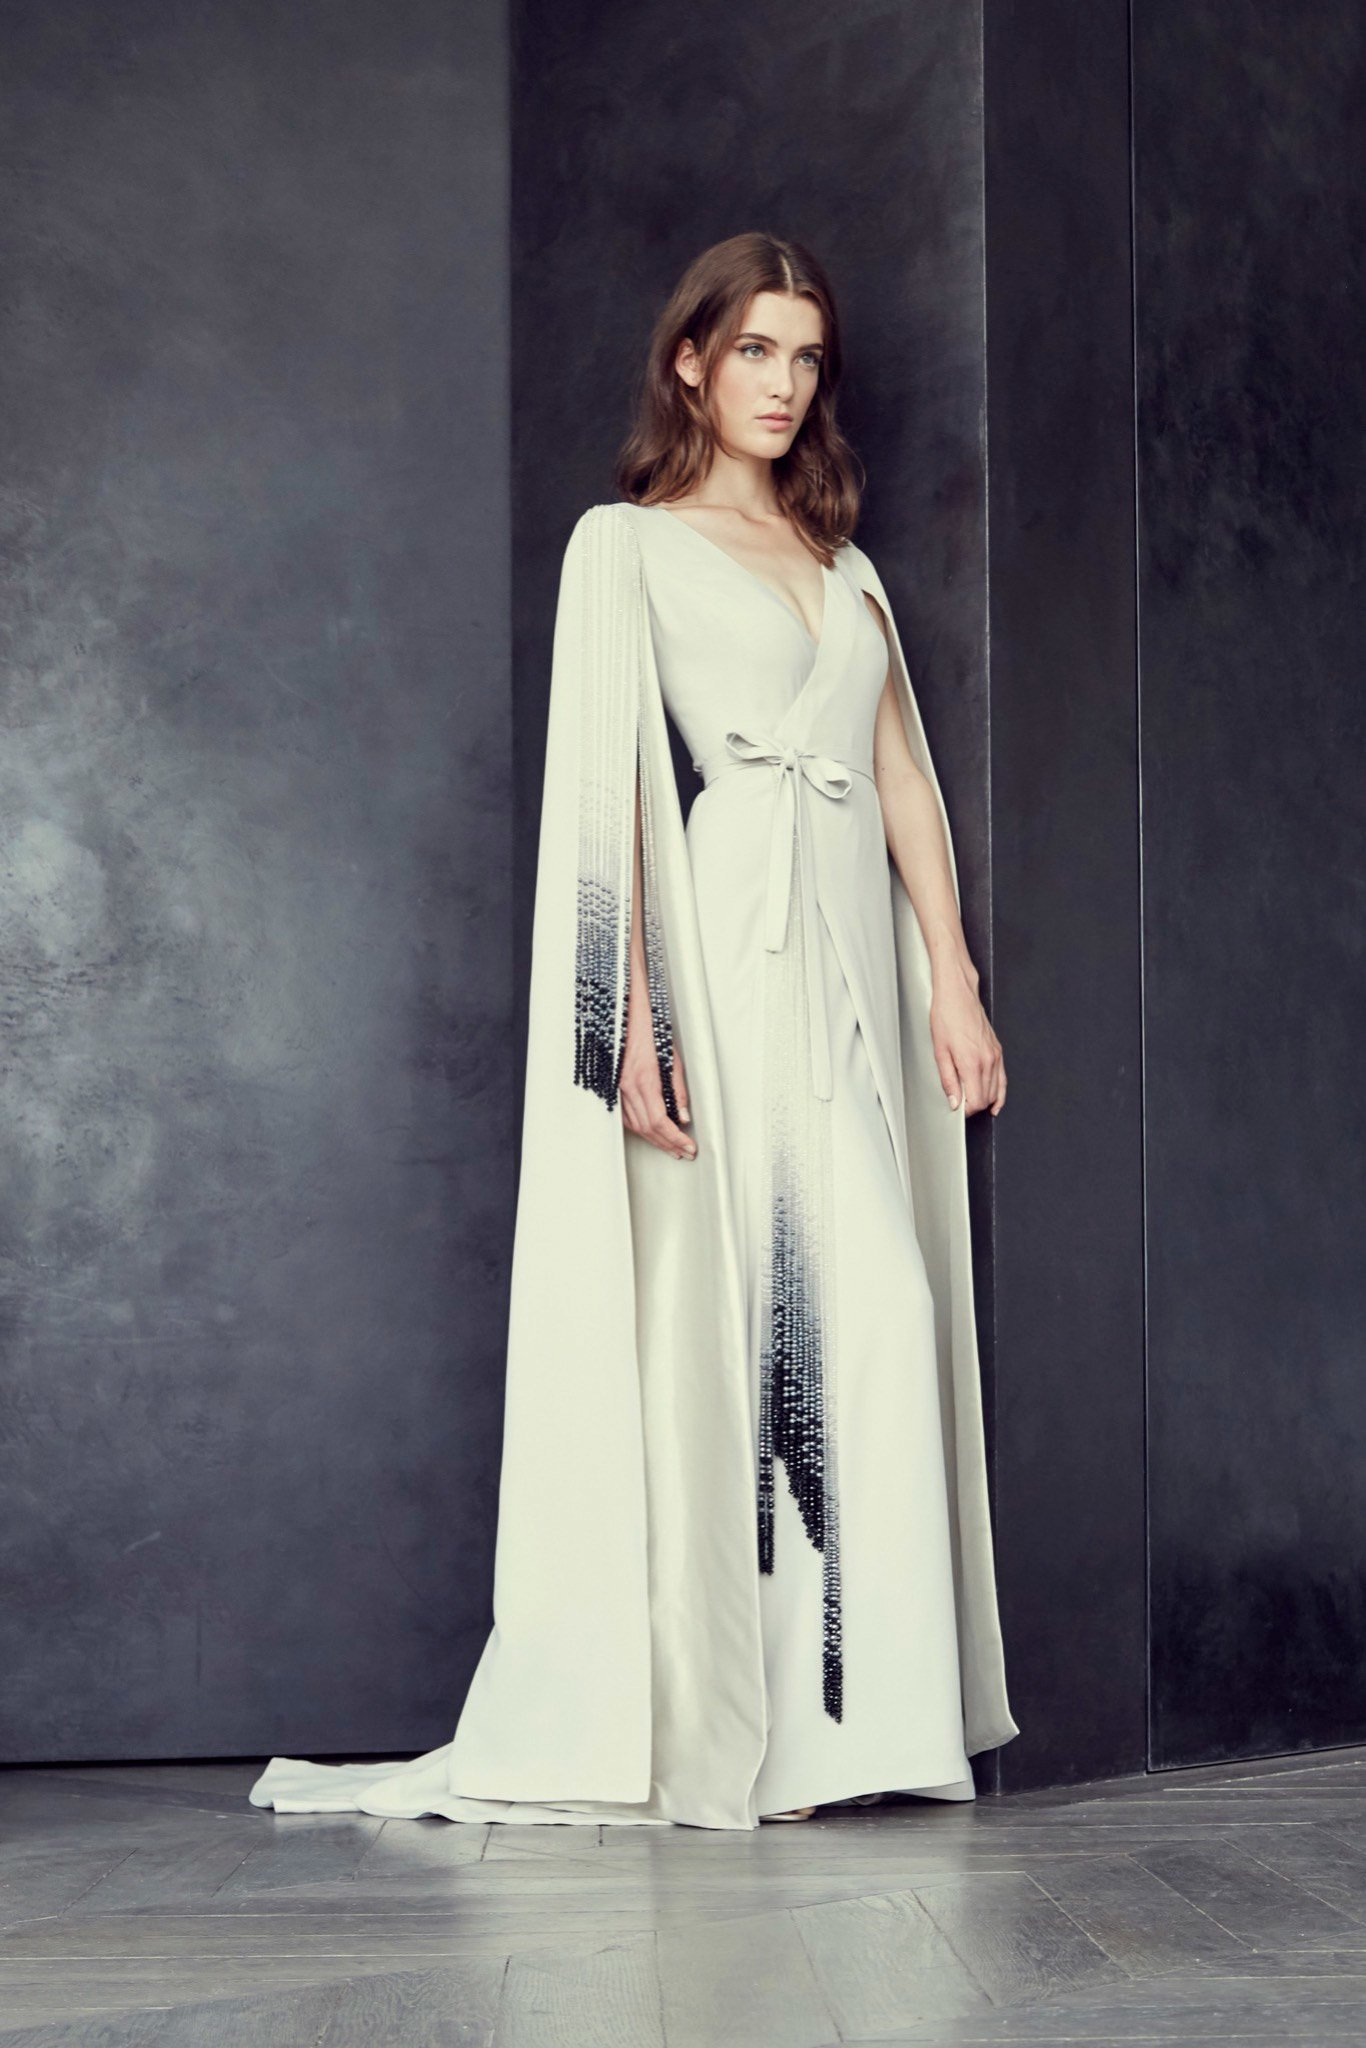 alexis-mabille-012-1366